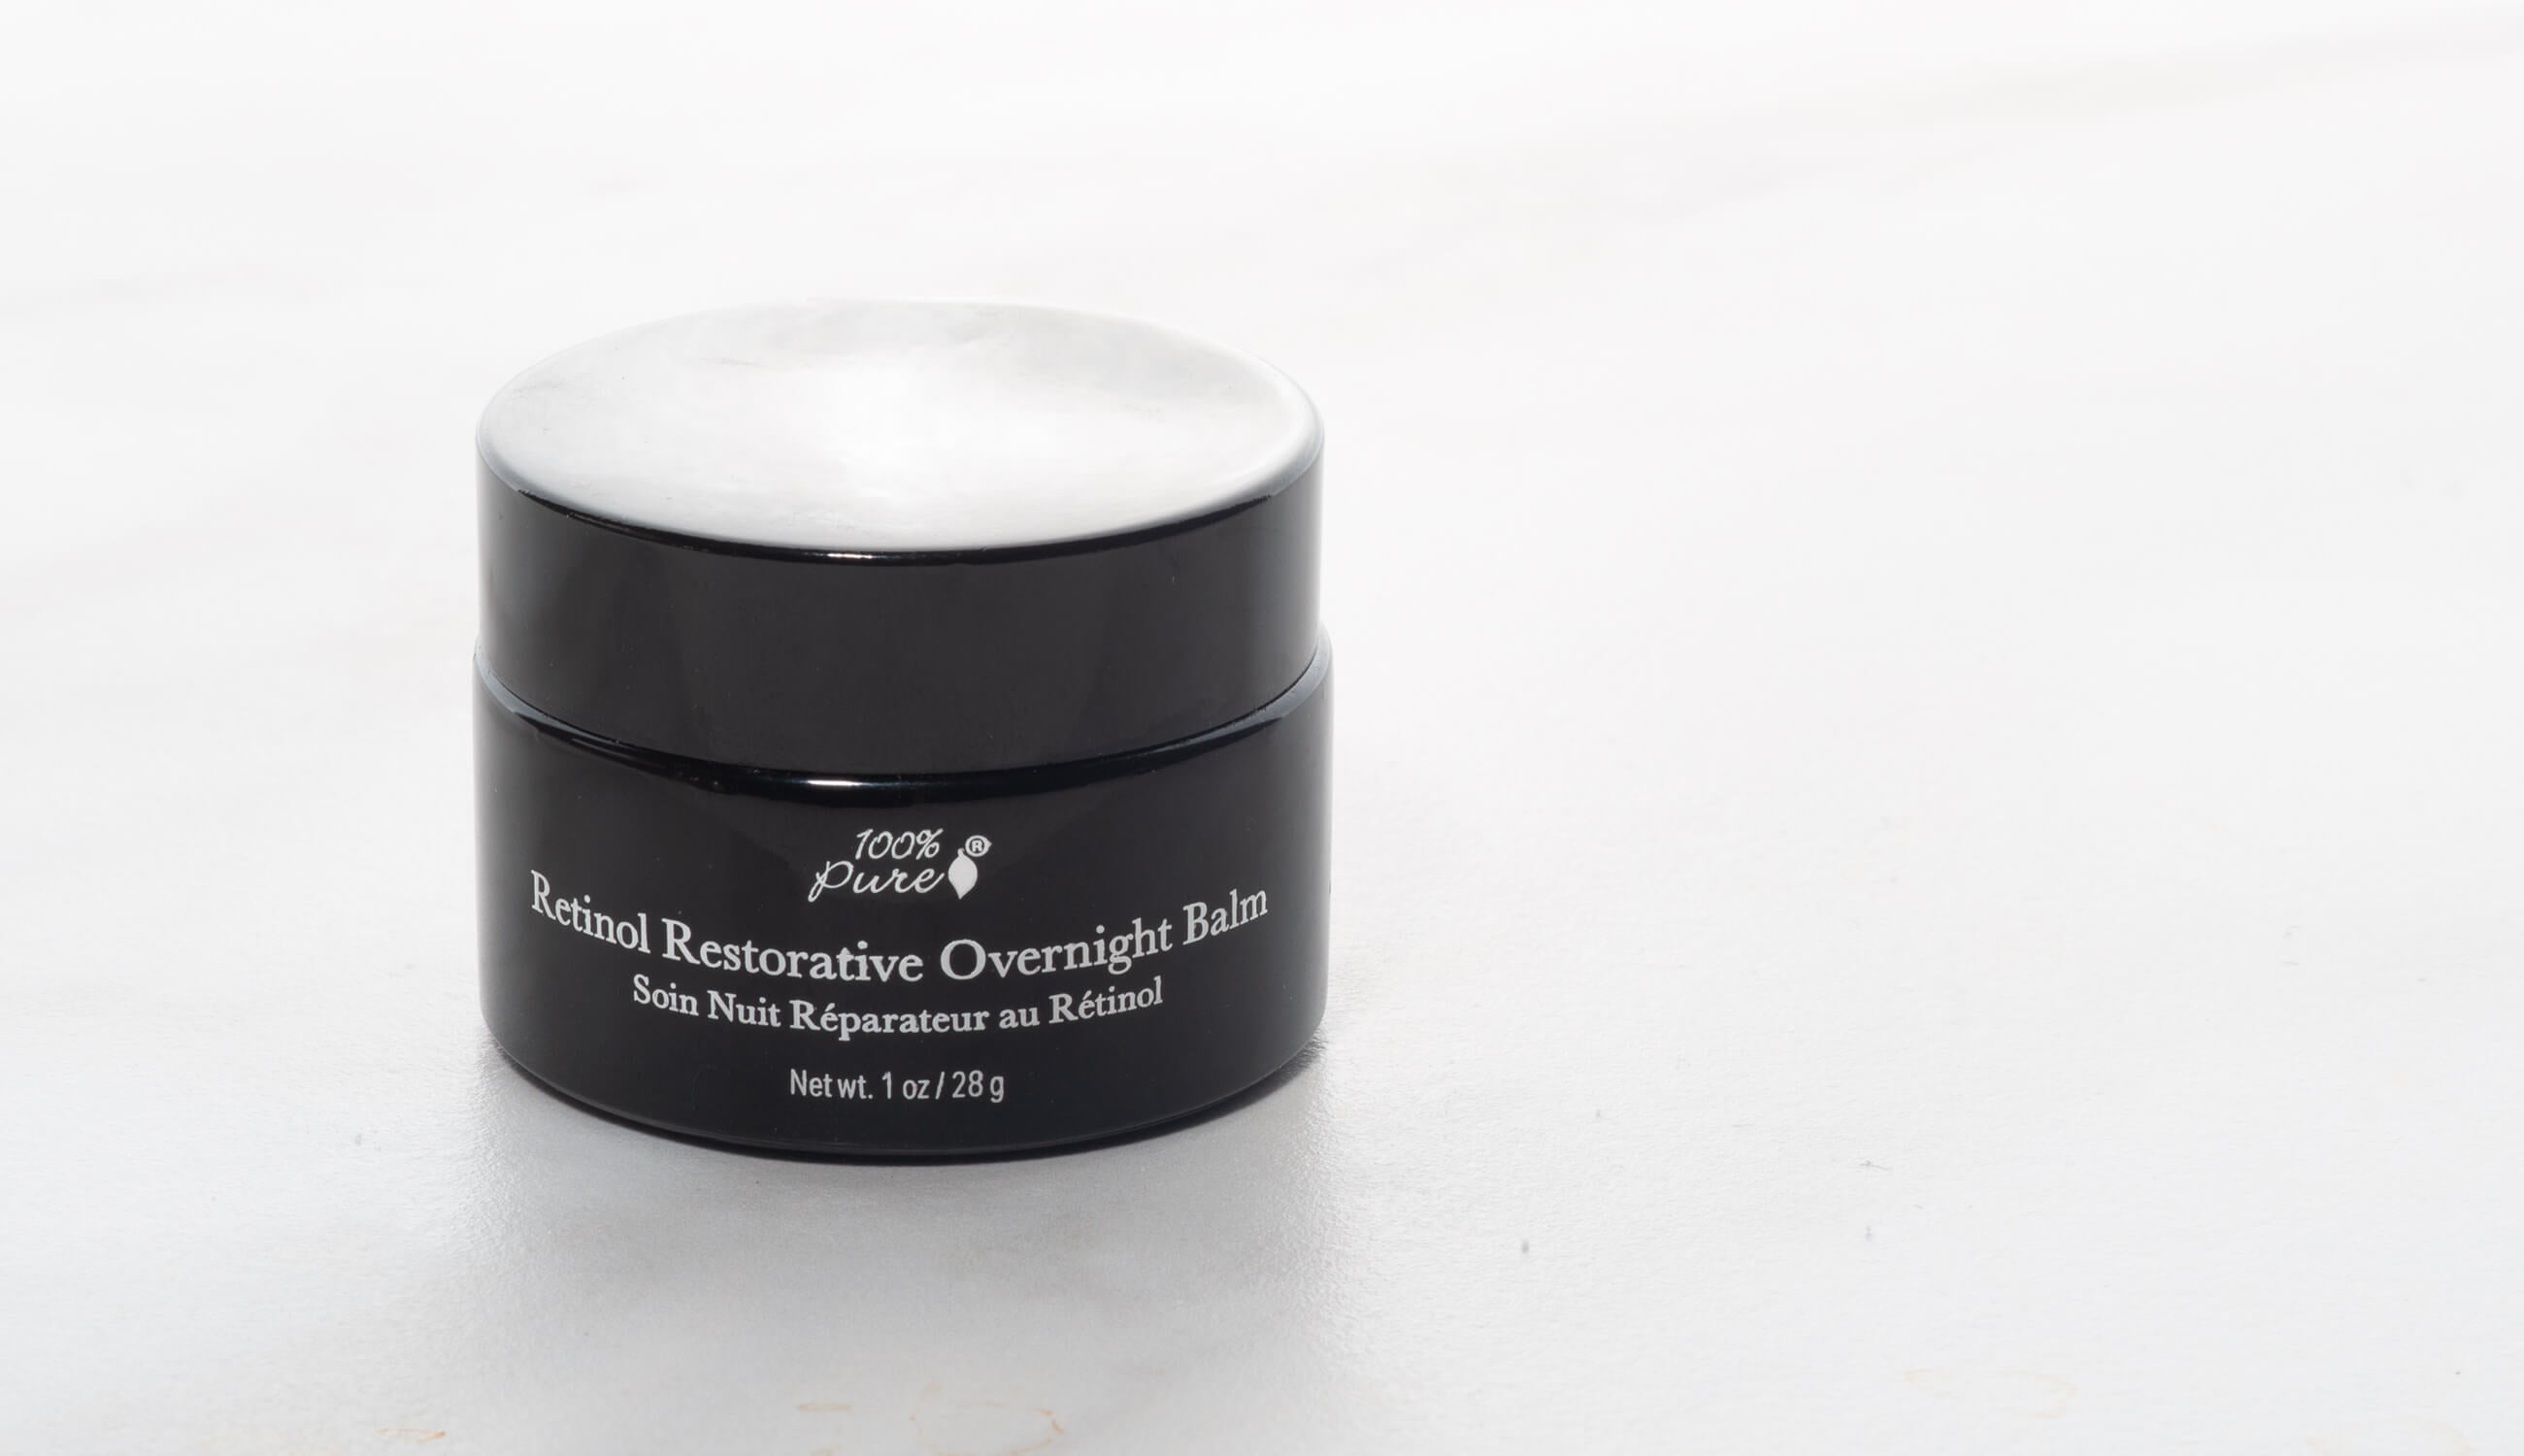 100% PURE Restorative Overnight Balm